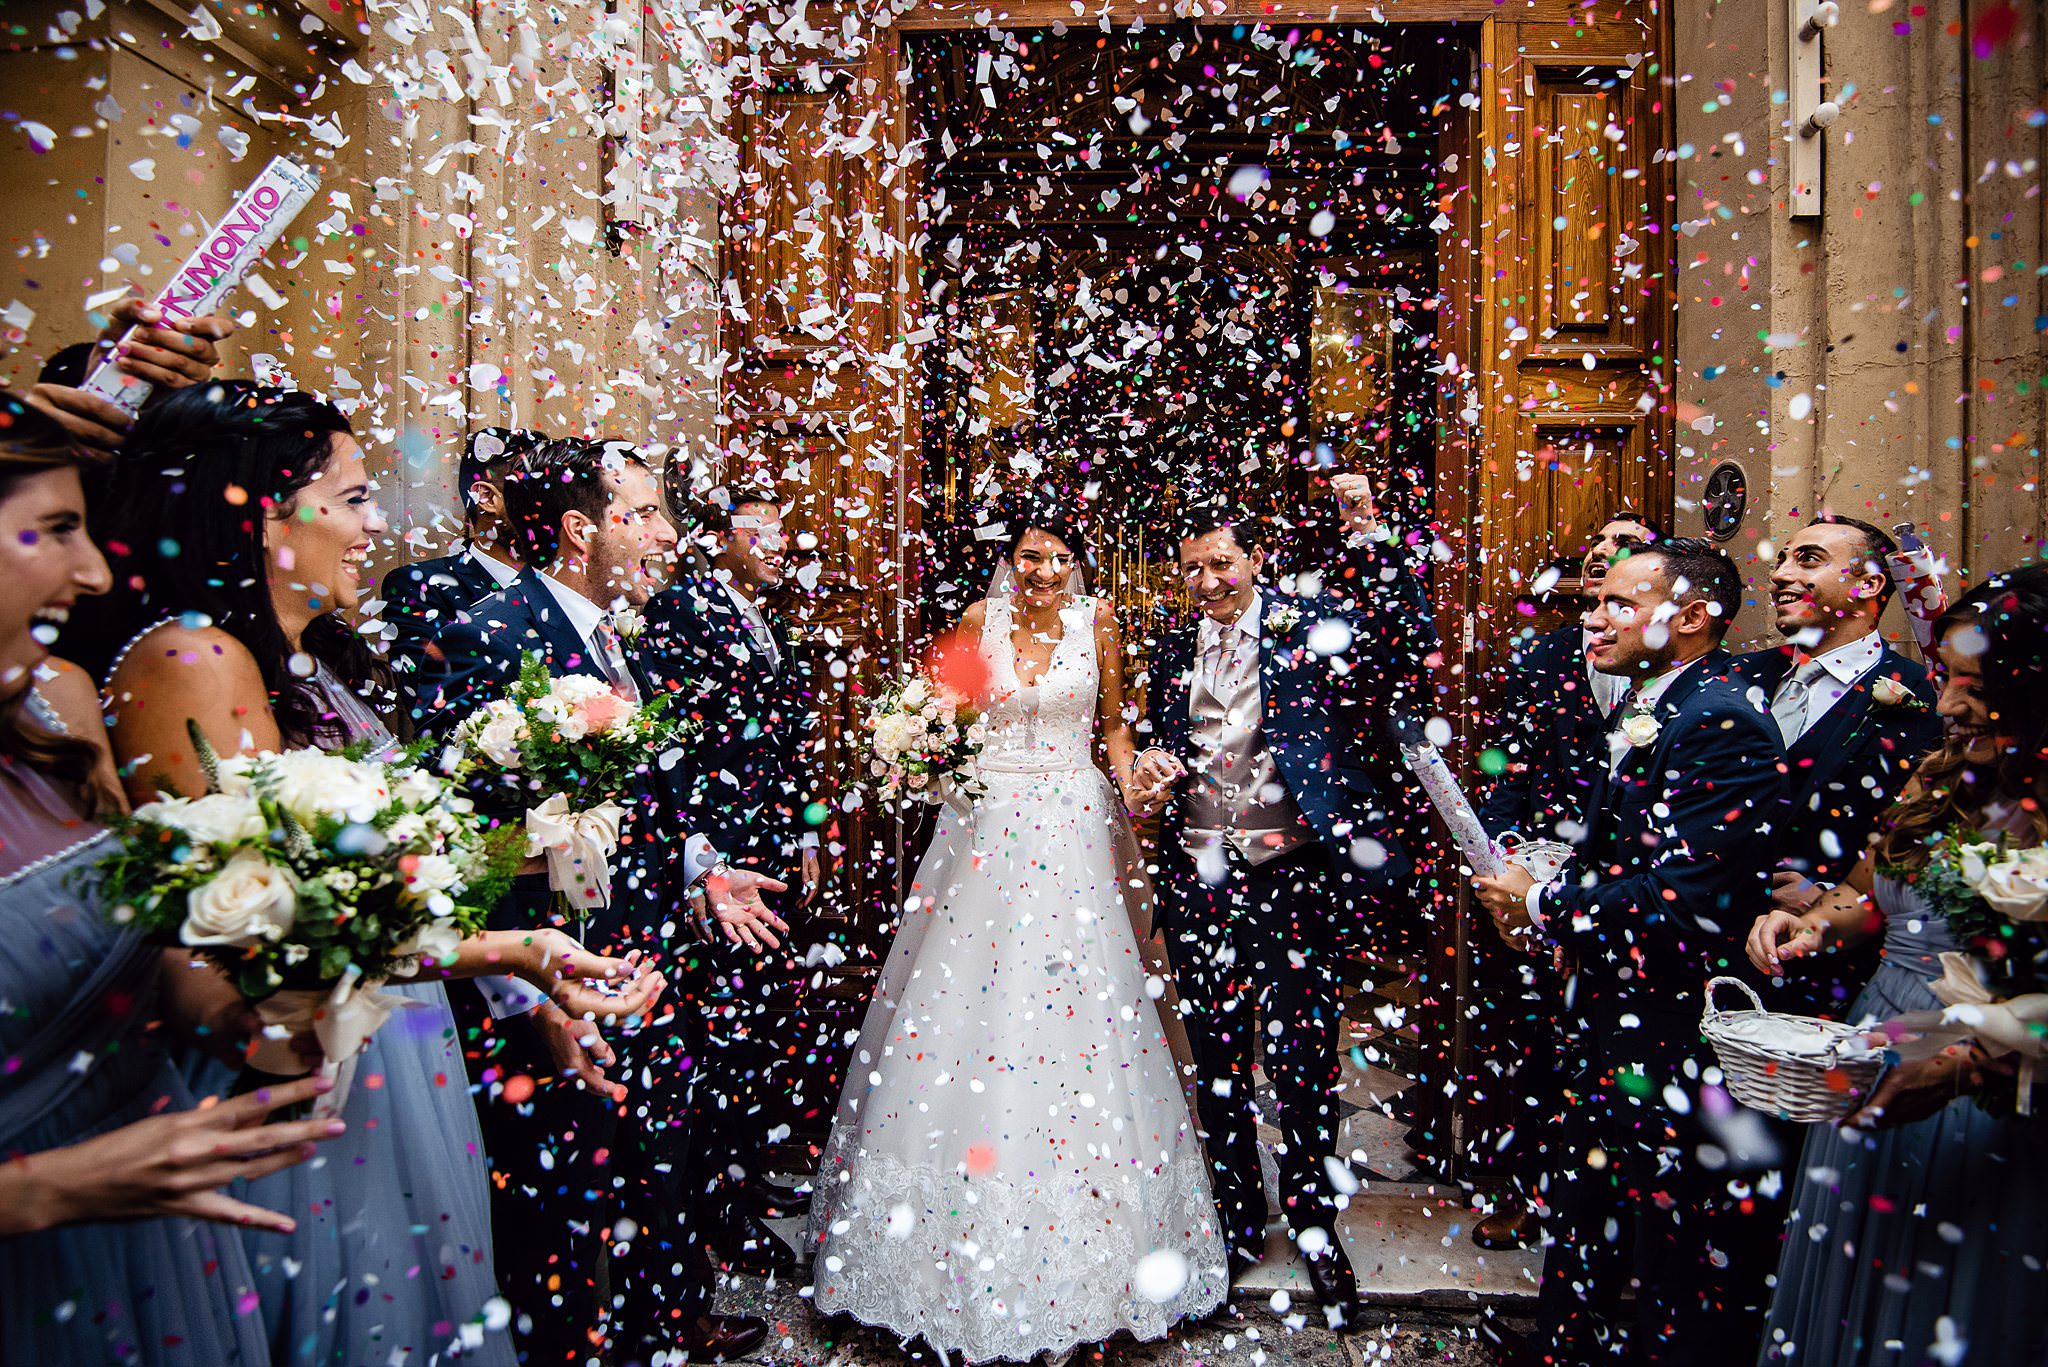 bride and groom exiting the church surrounded by confetti- photo by Shane P Watts Photography